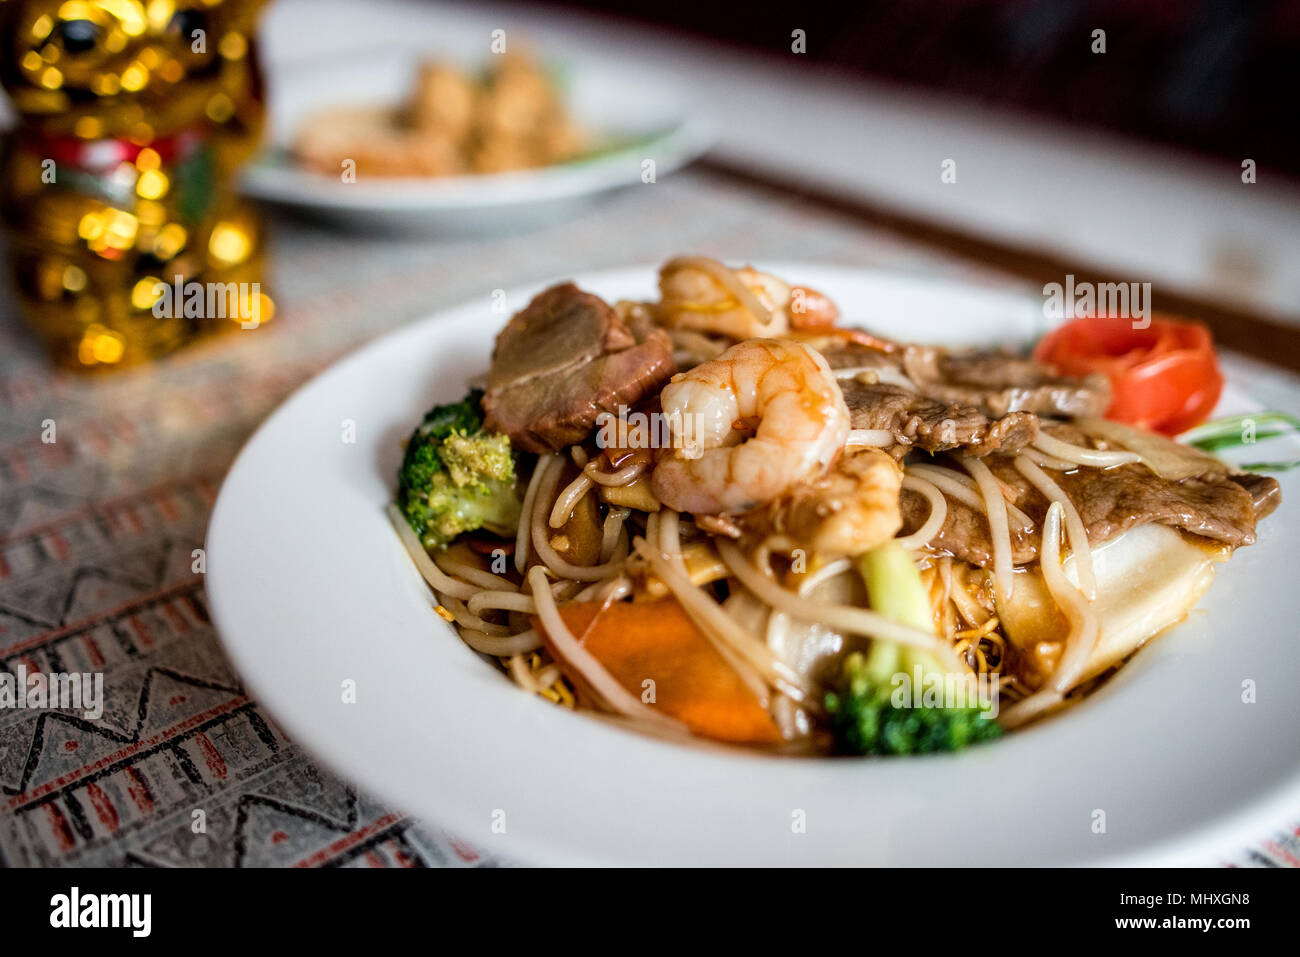 Chinese Food - Stock Image